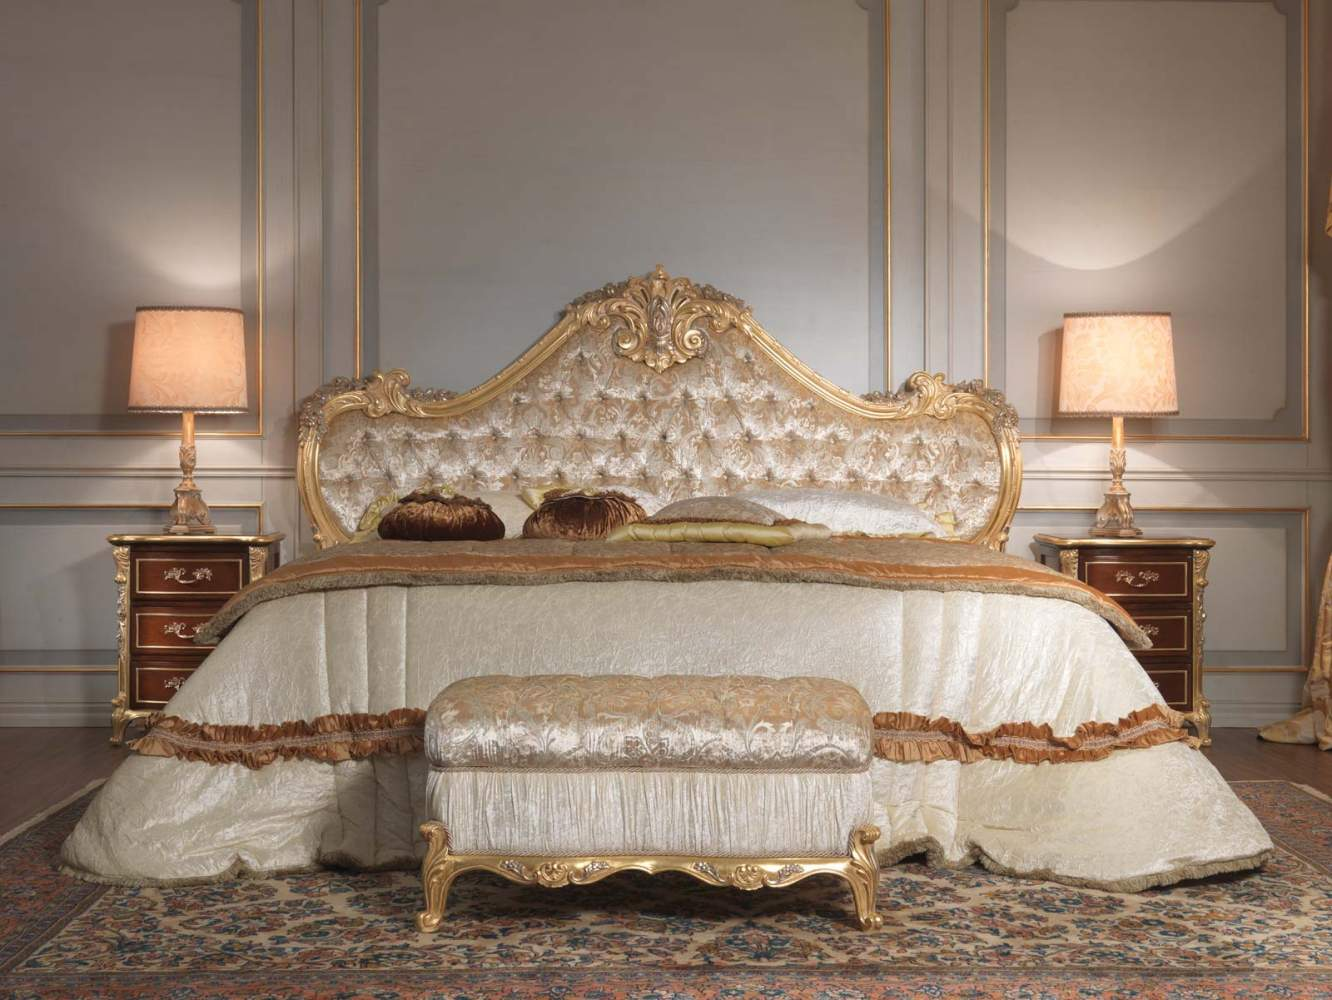 Classic italian bedroom 18th century, bed, bench, night table